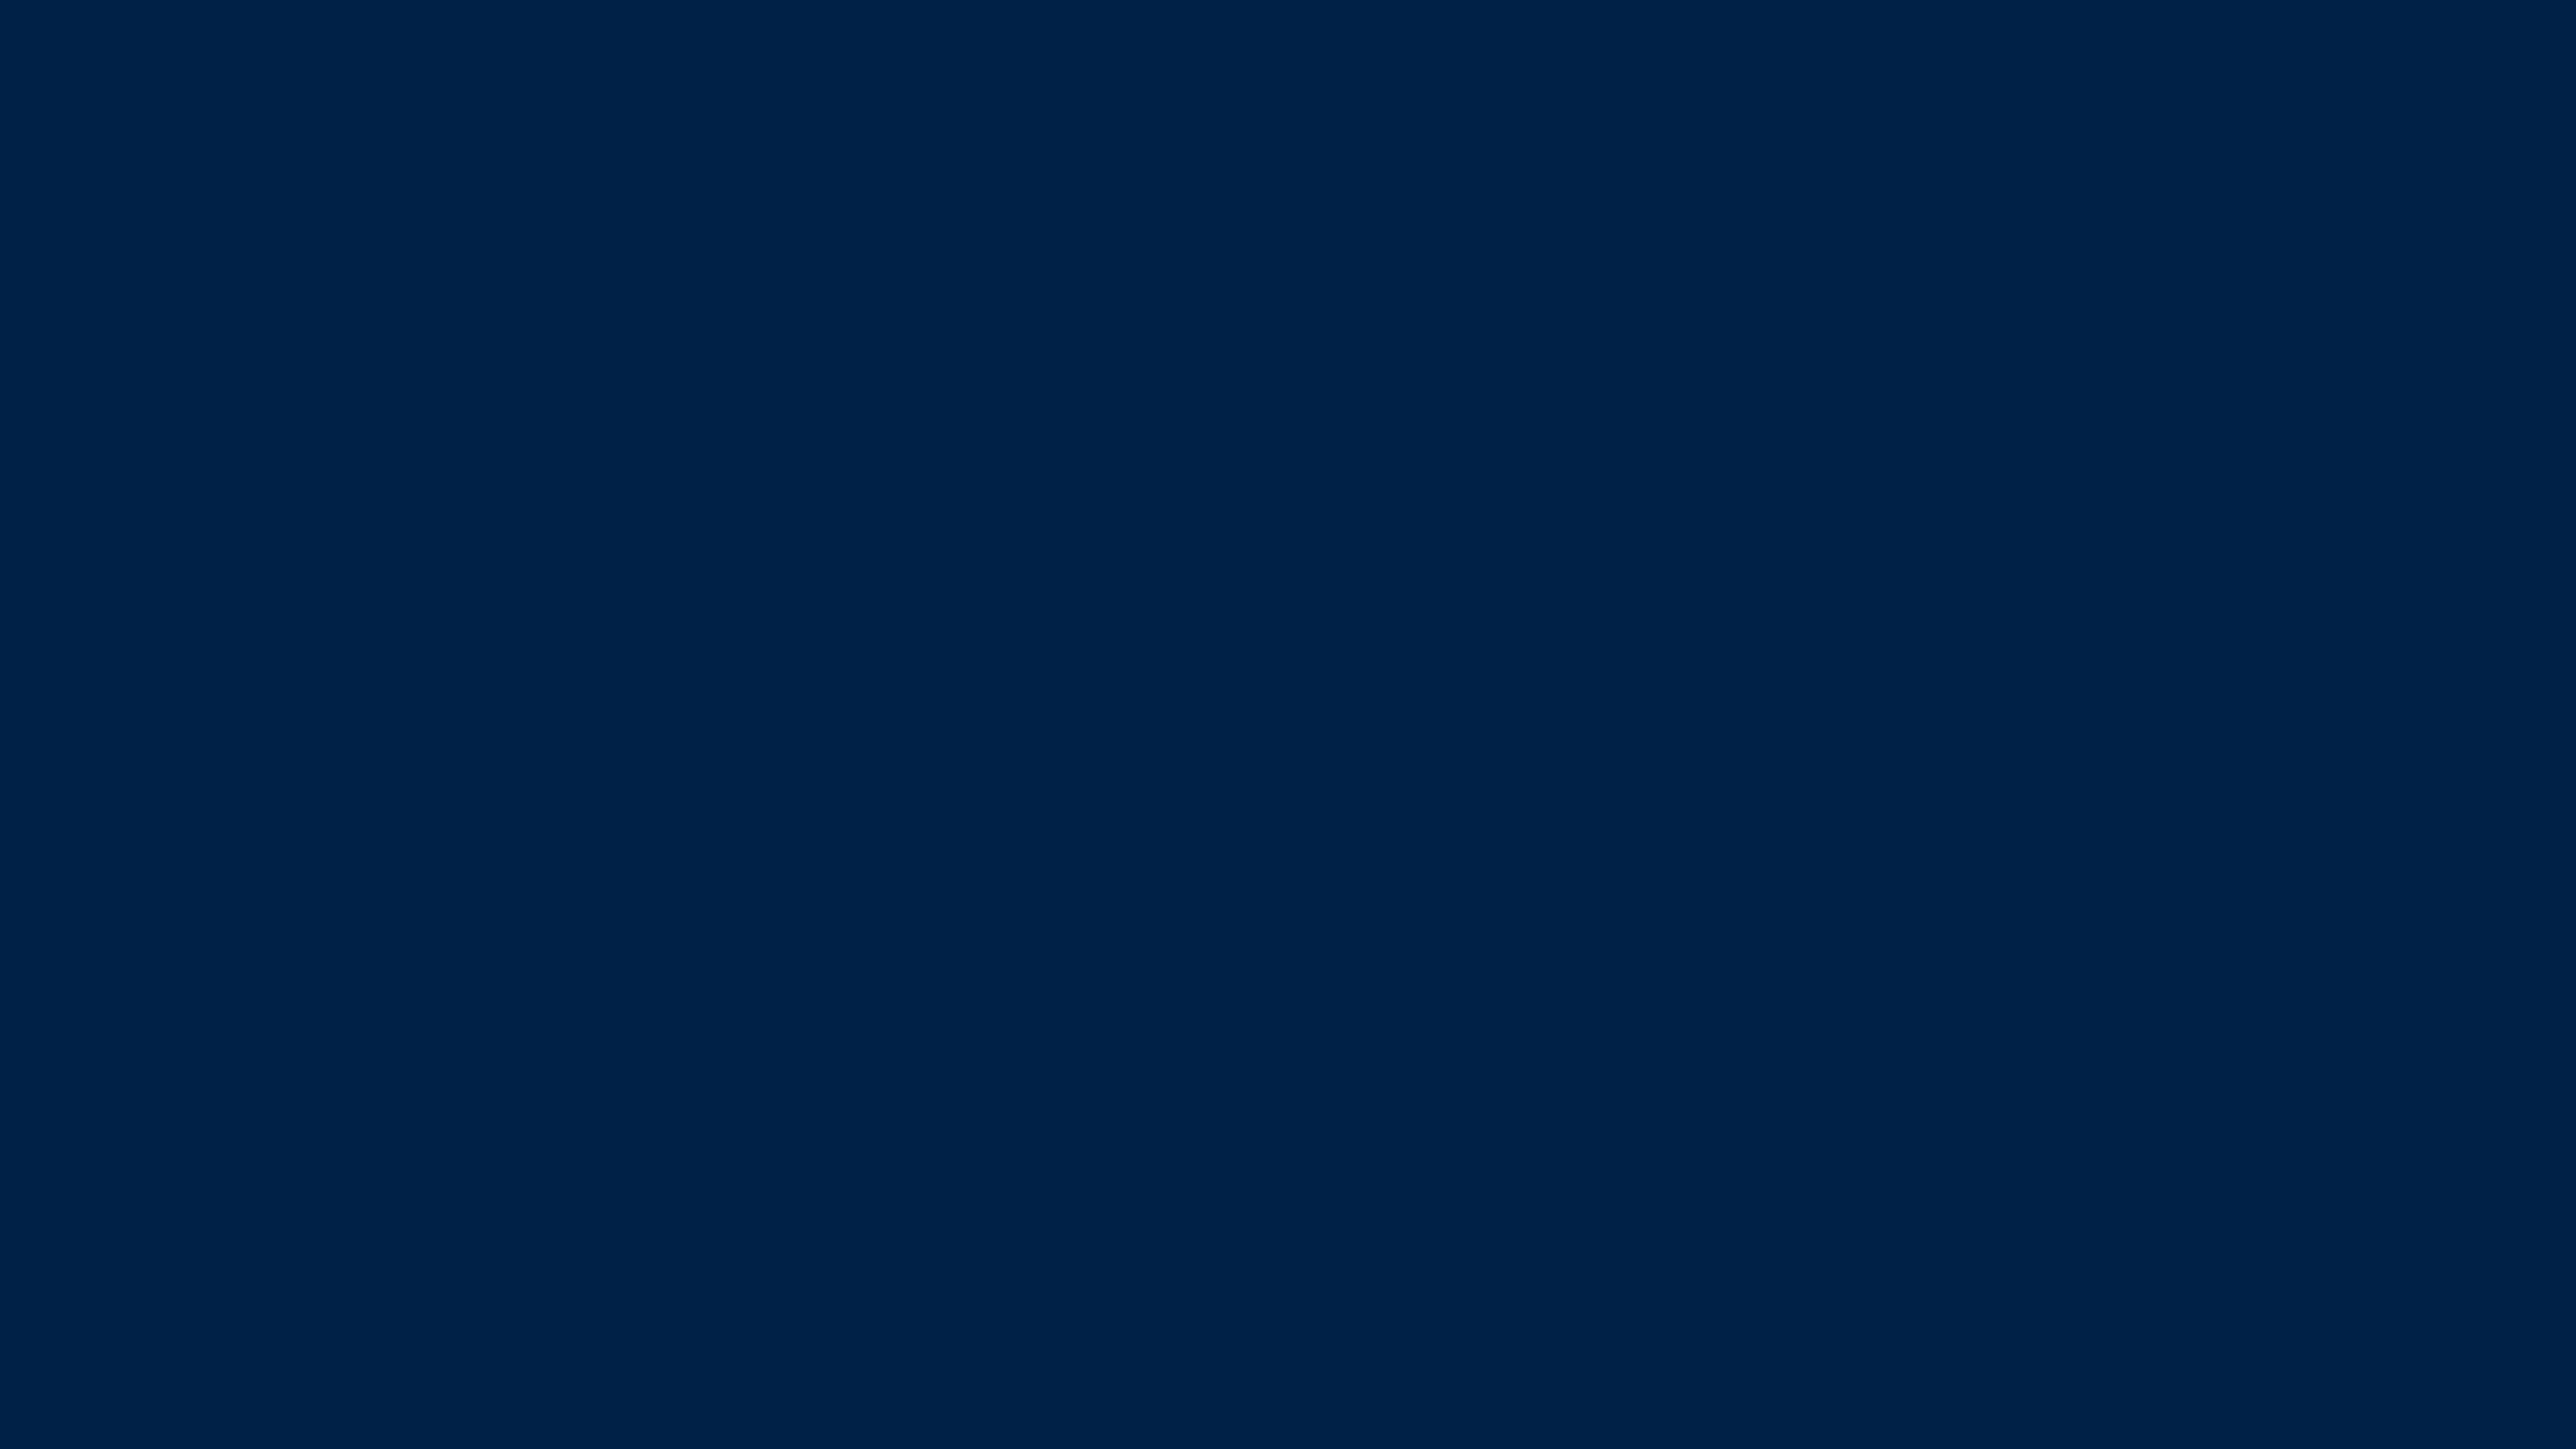 4096x2304 Oxford Blue Solid Color Background